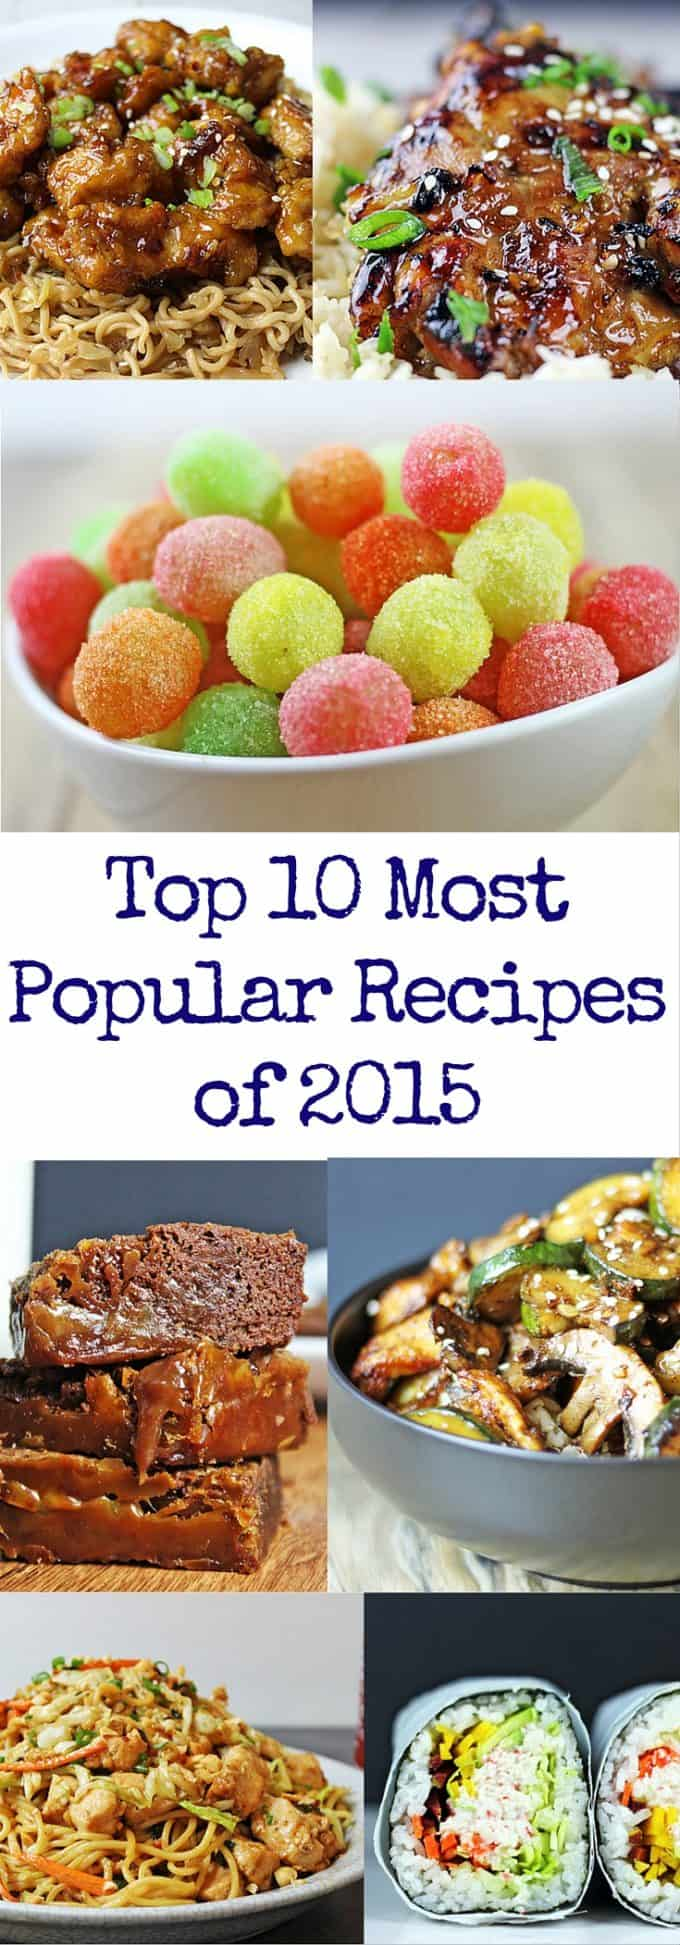 Top 10 Most Popular Recipes of 2015 with a couple desserts a fair amount of copycat recipes and lots of 5 ingredient meals! | dinnerthendessert.com